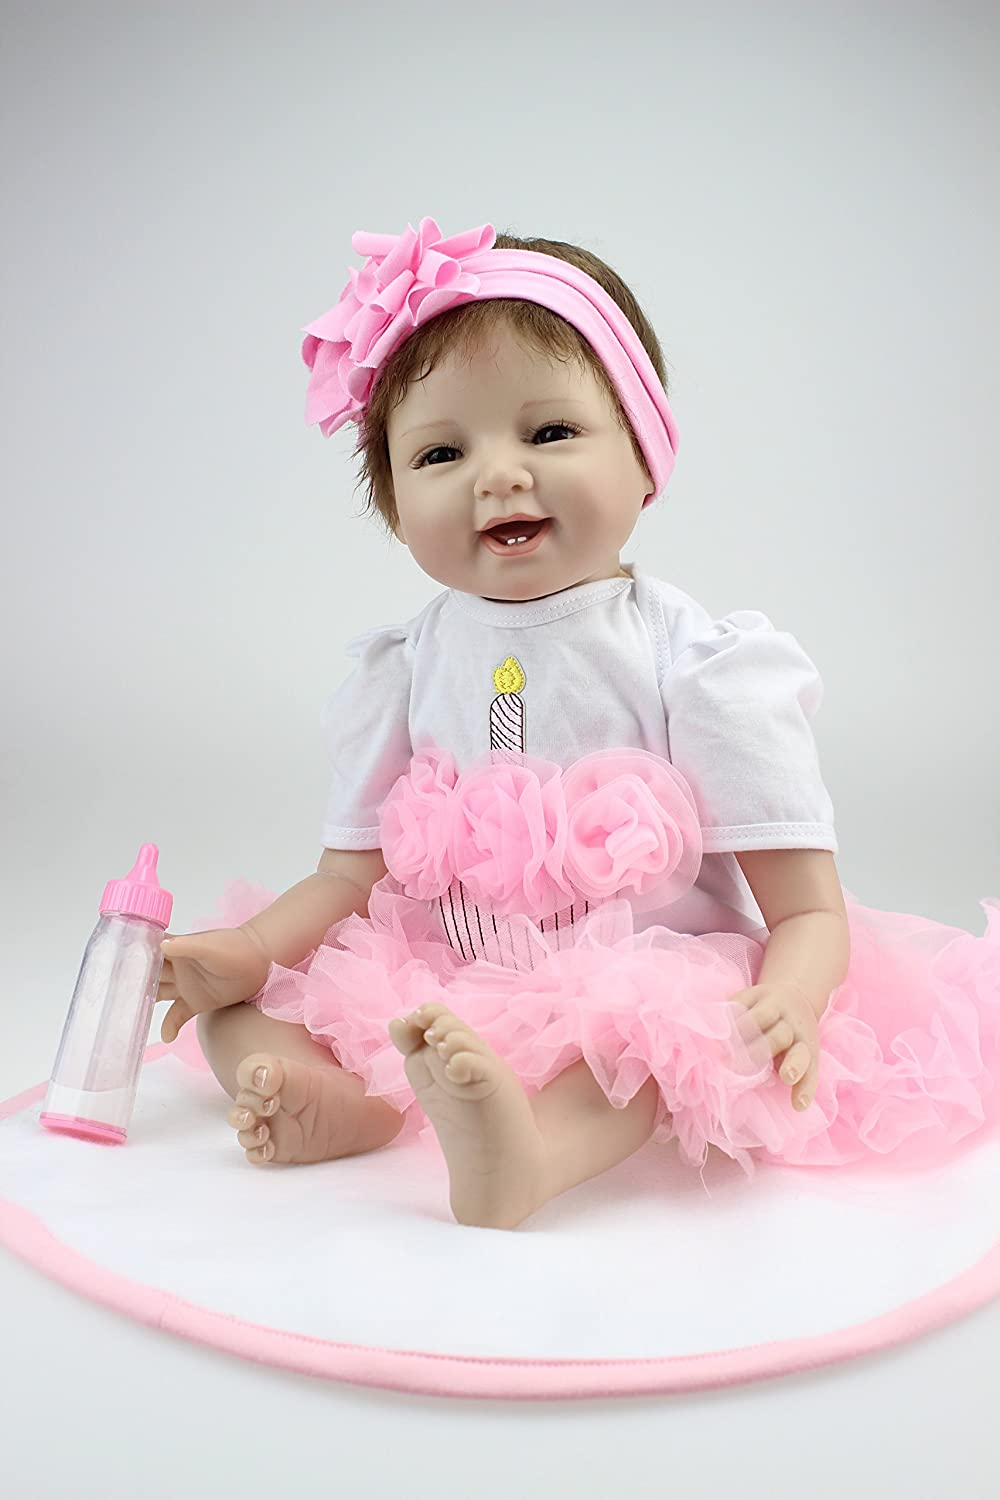 iCradle Real Life 22inch 55cm Reborn Baby Dolls Toddler Soft Silicone Baby Newborn Doll Toy for Ages 3+